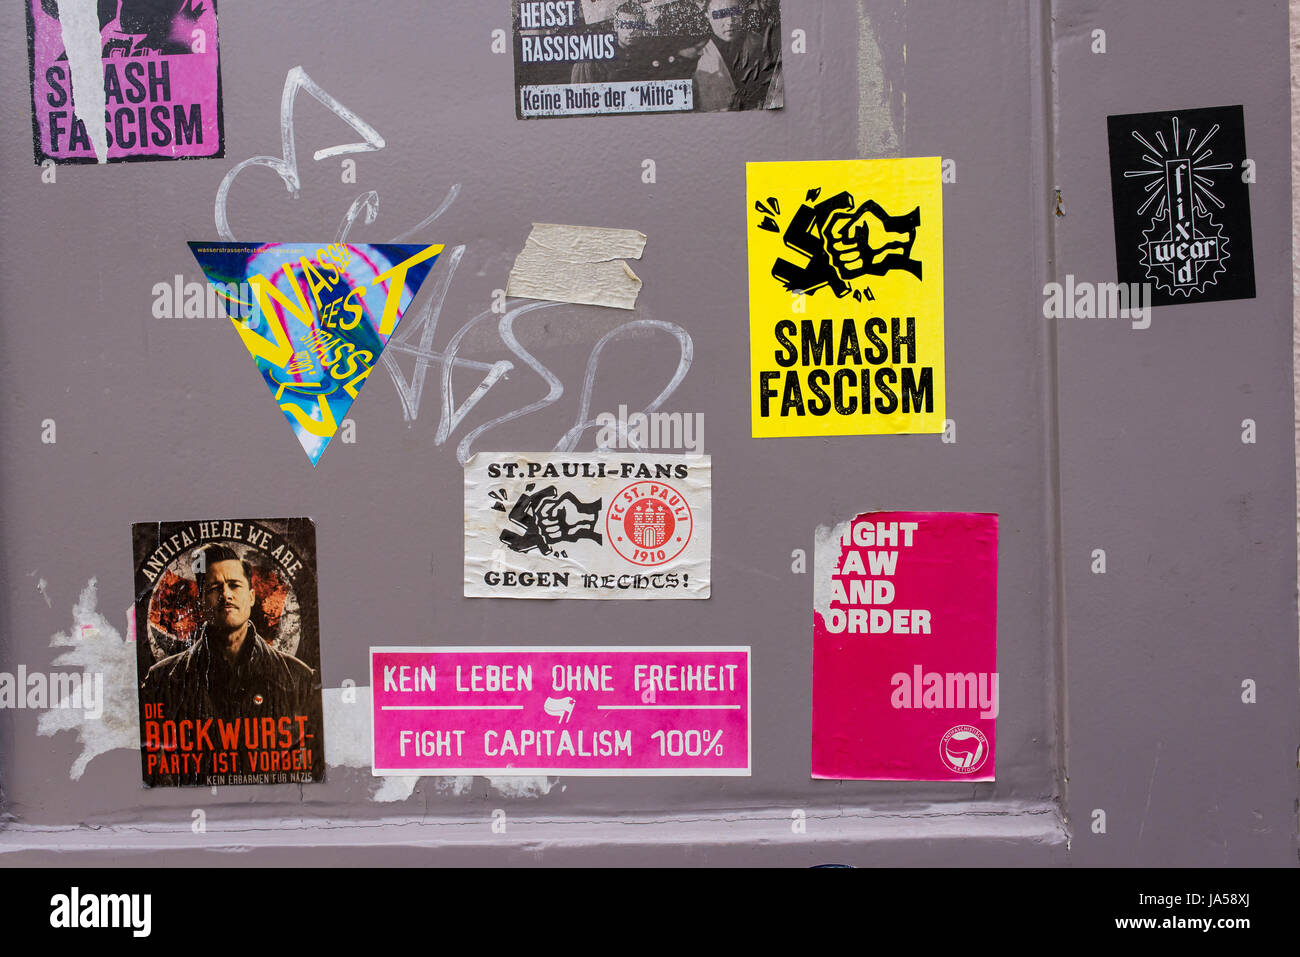 Anti fascism and fight capitalism stickers on a grey wall - Stock Image